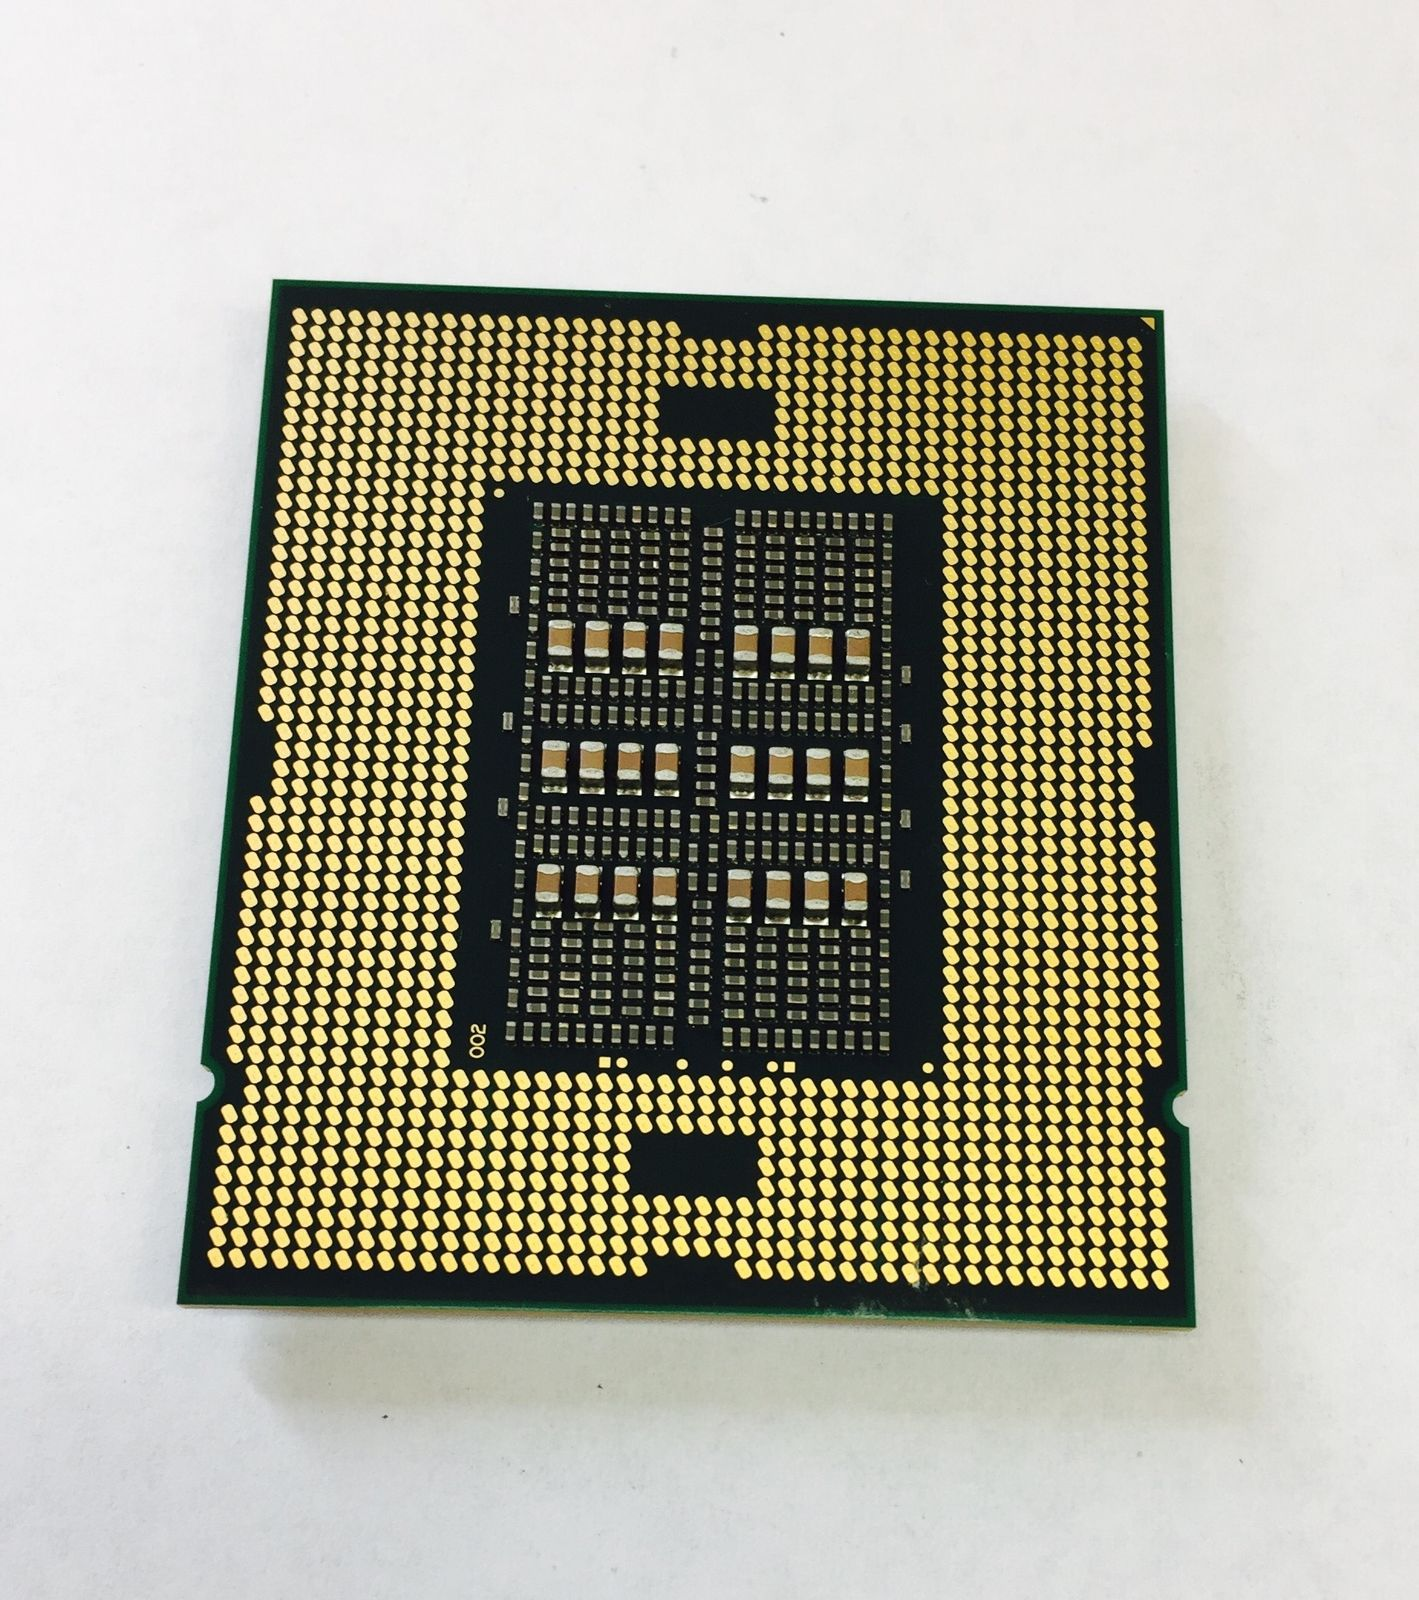 Primary image for Intel SLBRK E7520 QC 1.86GHZ/18MB processor